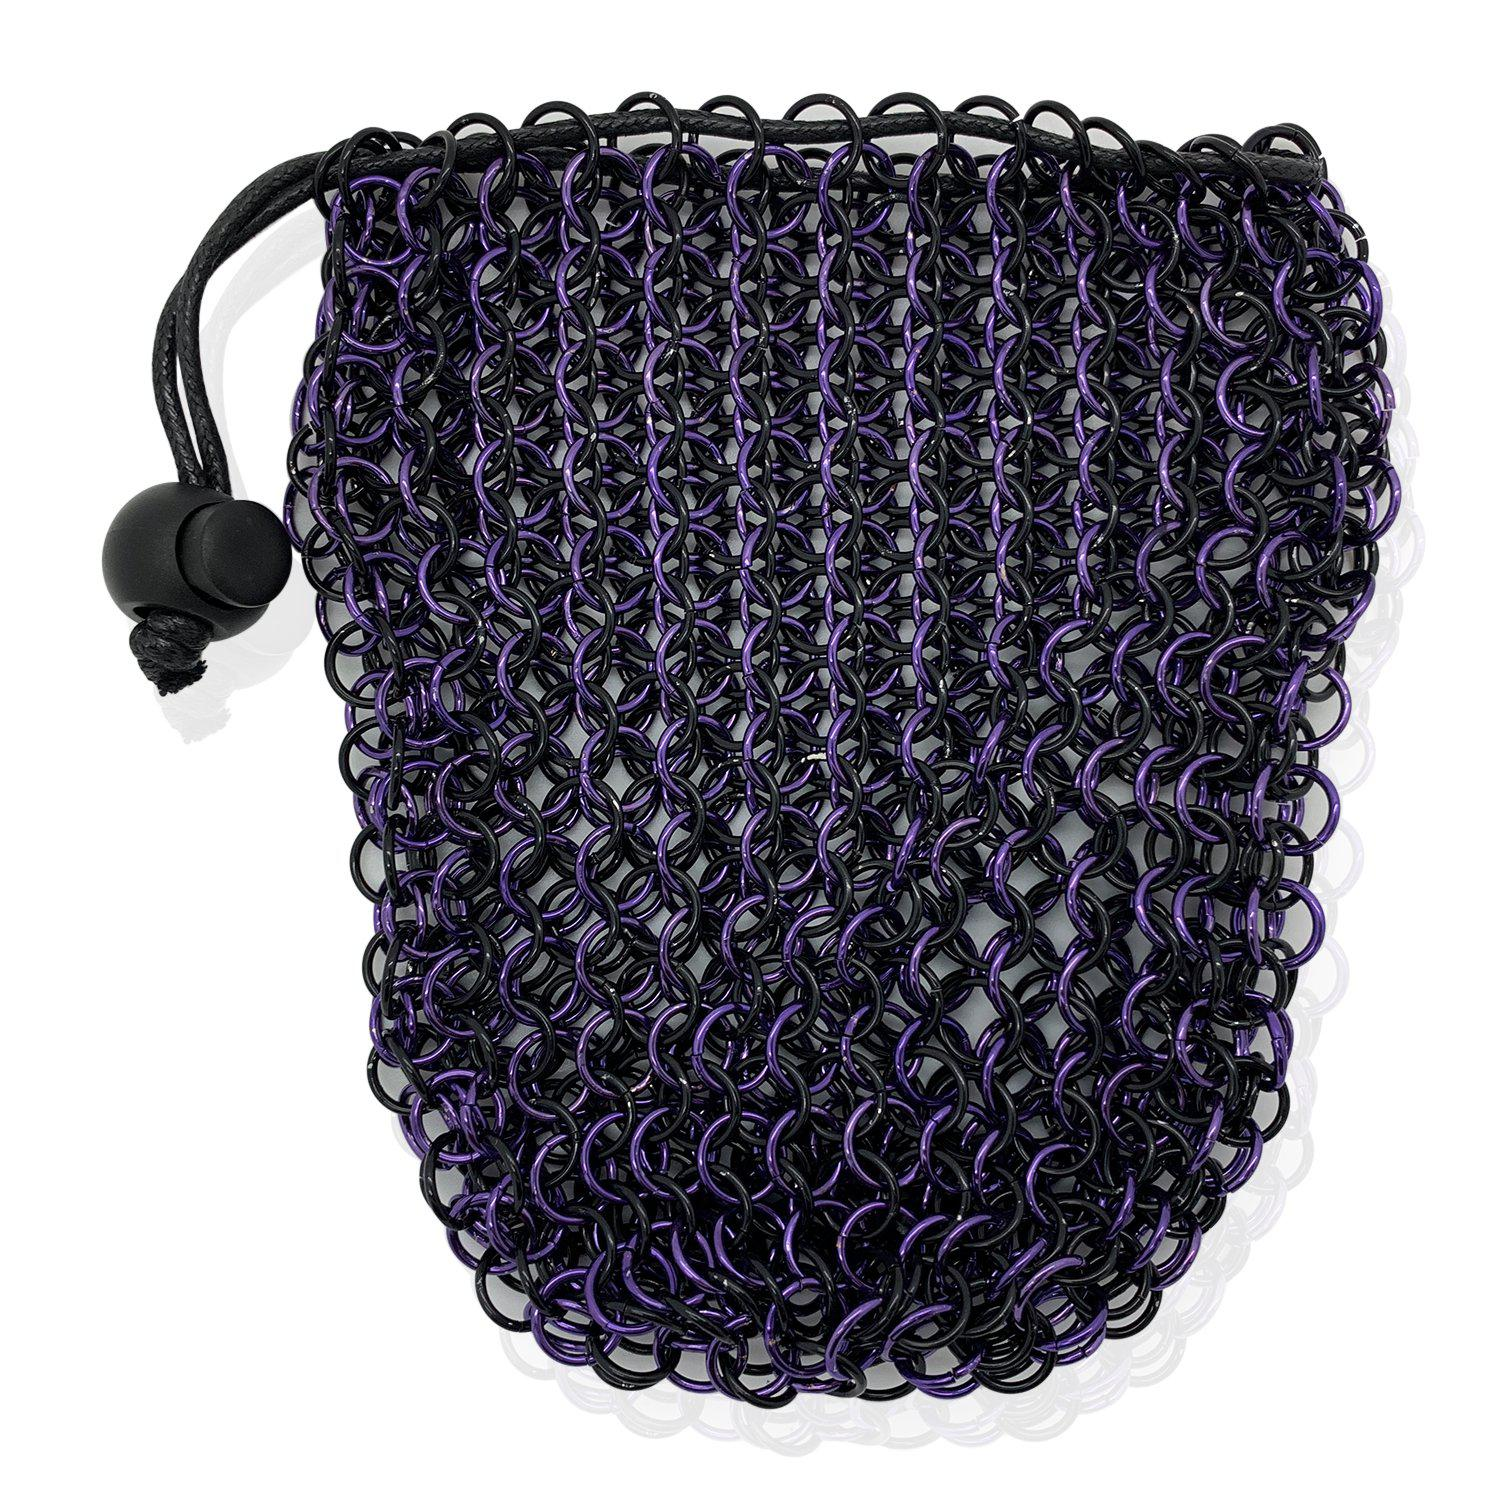 Stainless Steel Chainmail Dice Bag - Purple & Black by Norse Foundry